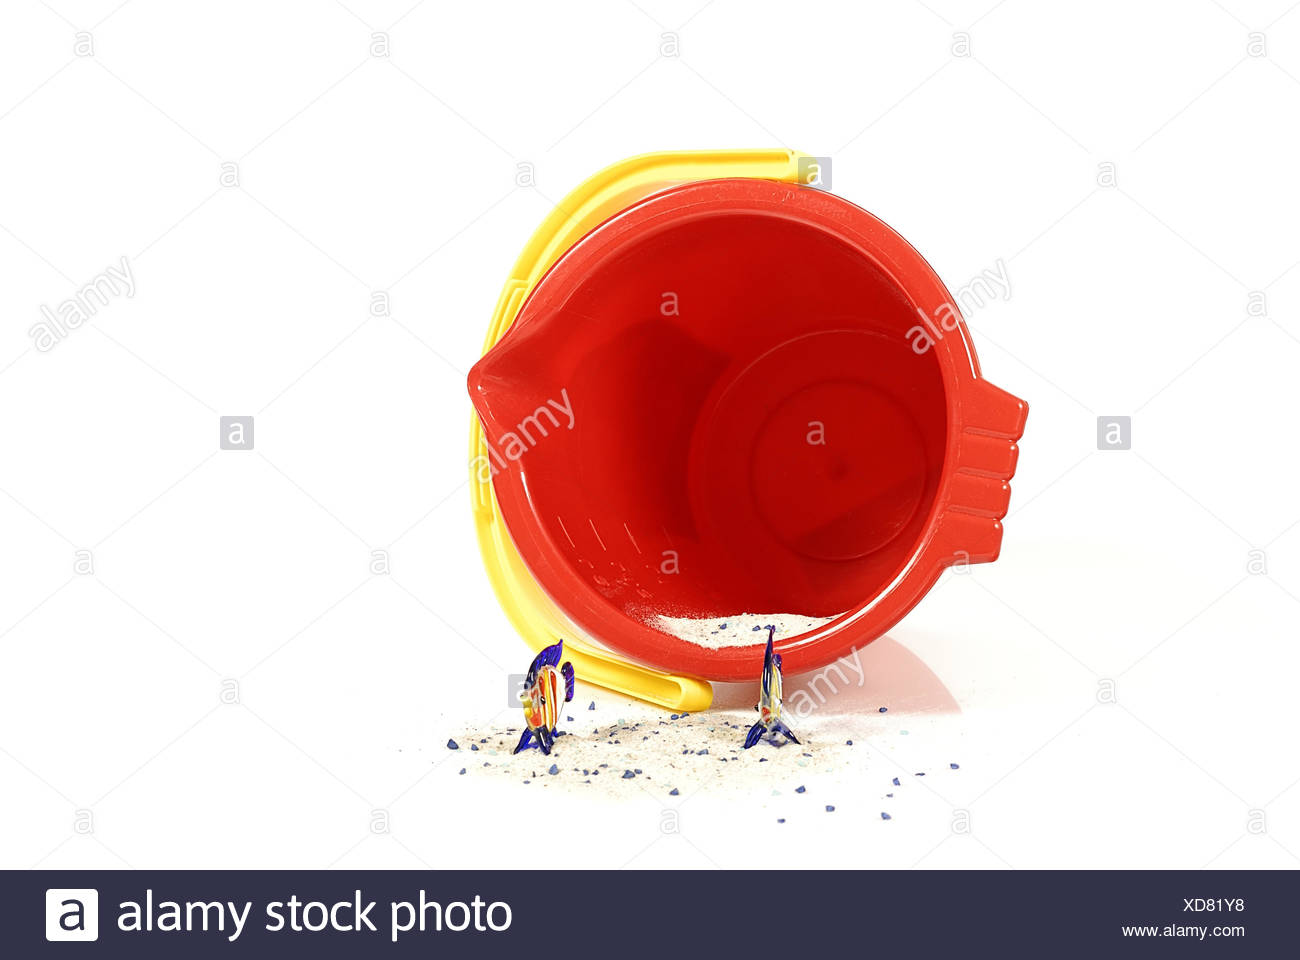 fische im eimer-fishes in a pail - Stock Image